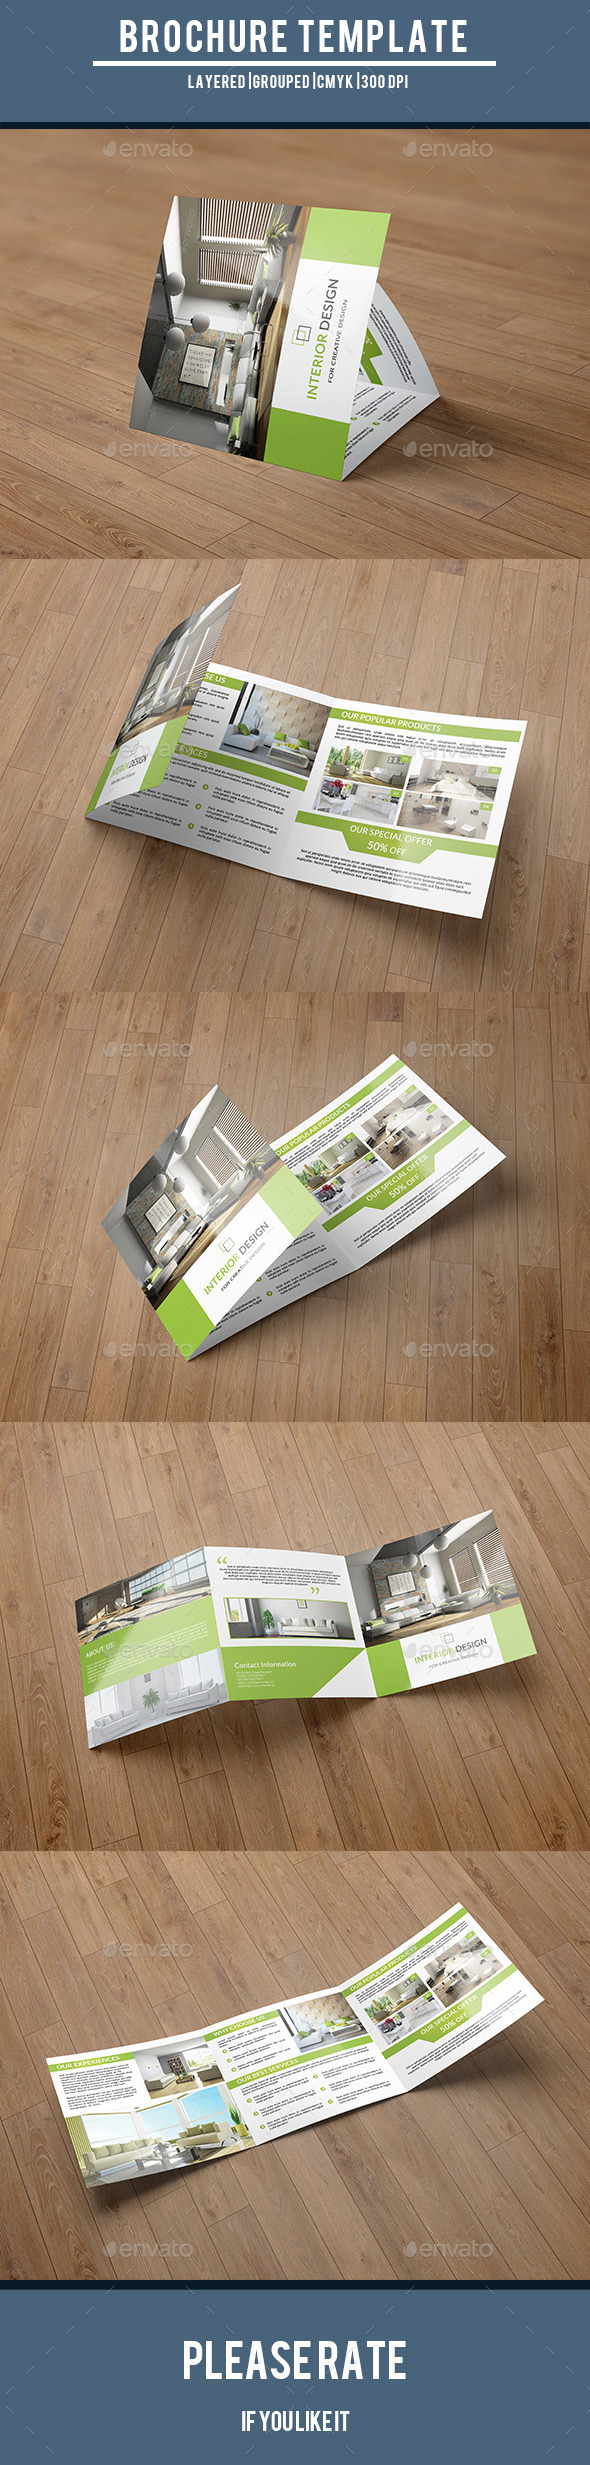 Square Trifold for Interior Design-V51 - Corporate Brochures